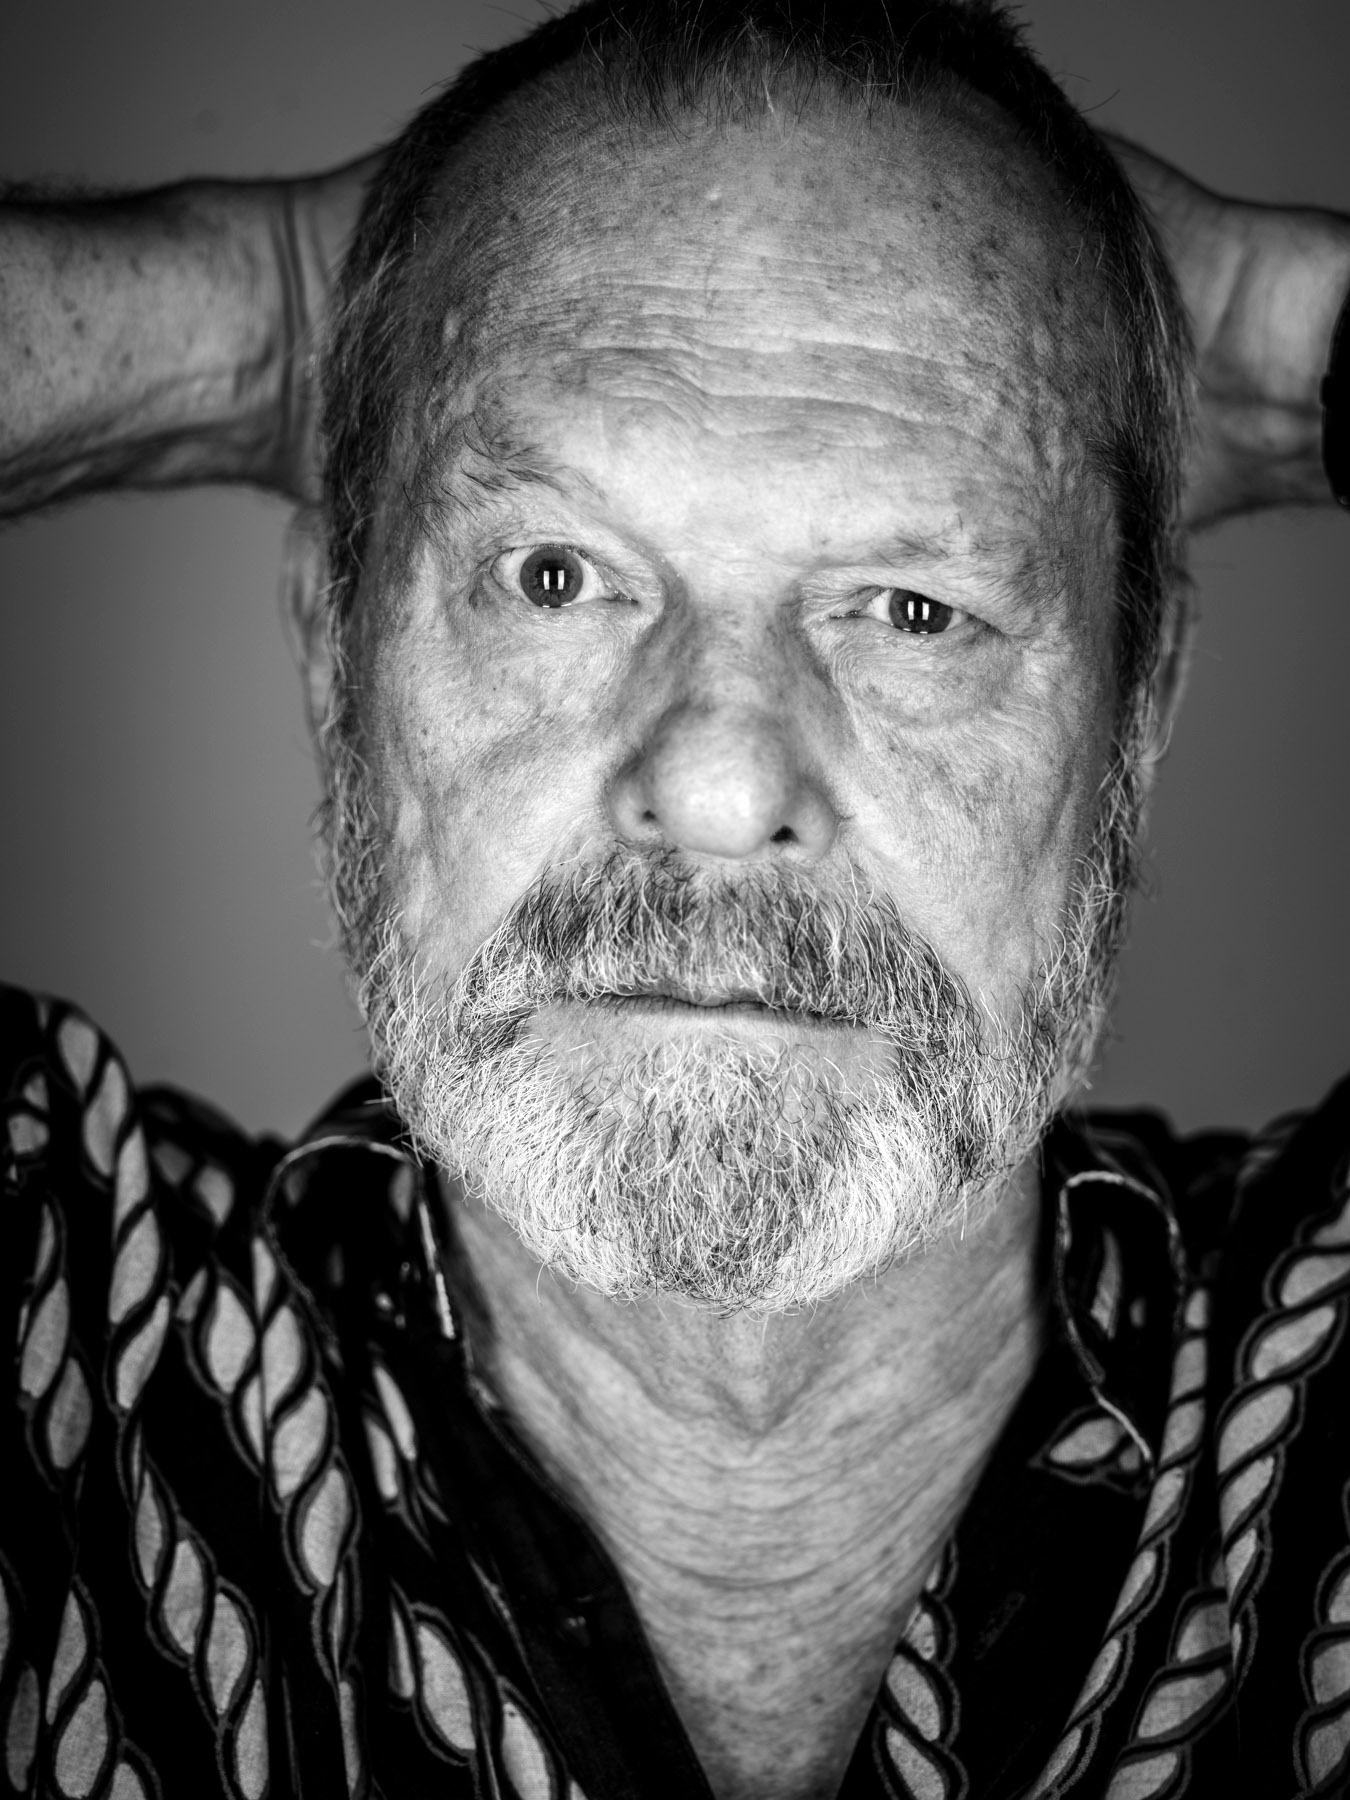 terry gilliam bookterry gilliam movies, terry gilliam young, terry gilliam interview, terry gilliam twitter, terry gilliam films, terry gilliam will direct for food, terry gilliam book, terry gilliam brazil review, terry gilliam venus, terry gilliam wiki, terry gilliam atheist, terry gilliam contact, terry gilliam filmy, terry gilliam favourite films, terry gilliam dreams, terry gilliam instagram, terry gilliam illustration, terry gilliam cut out, terry gilliam biography, terry gilliam brazil soundtrack